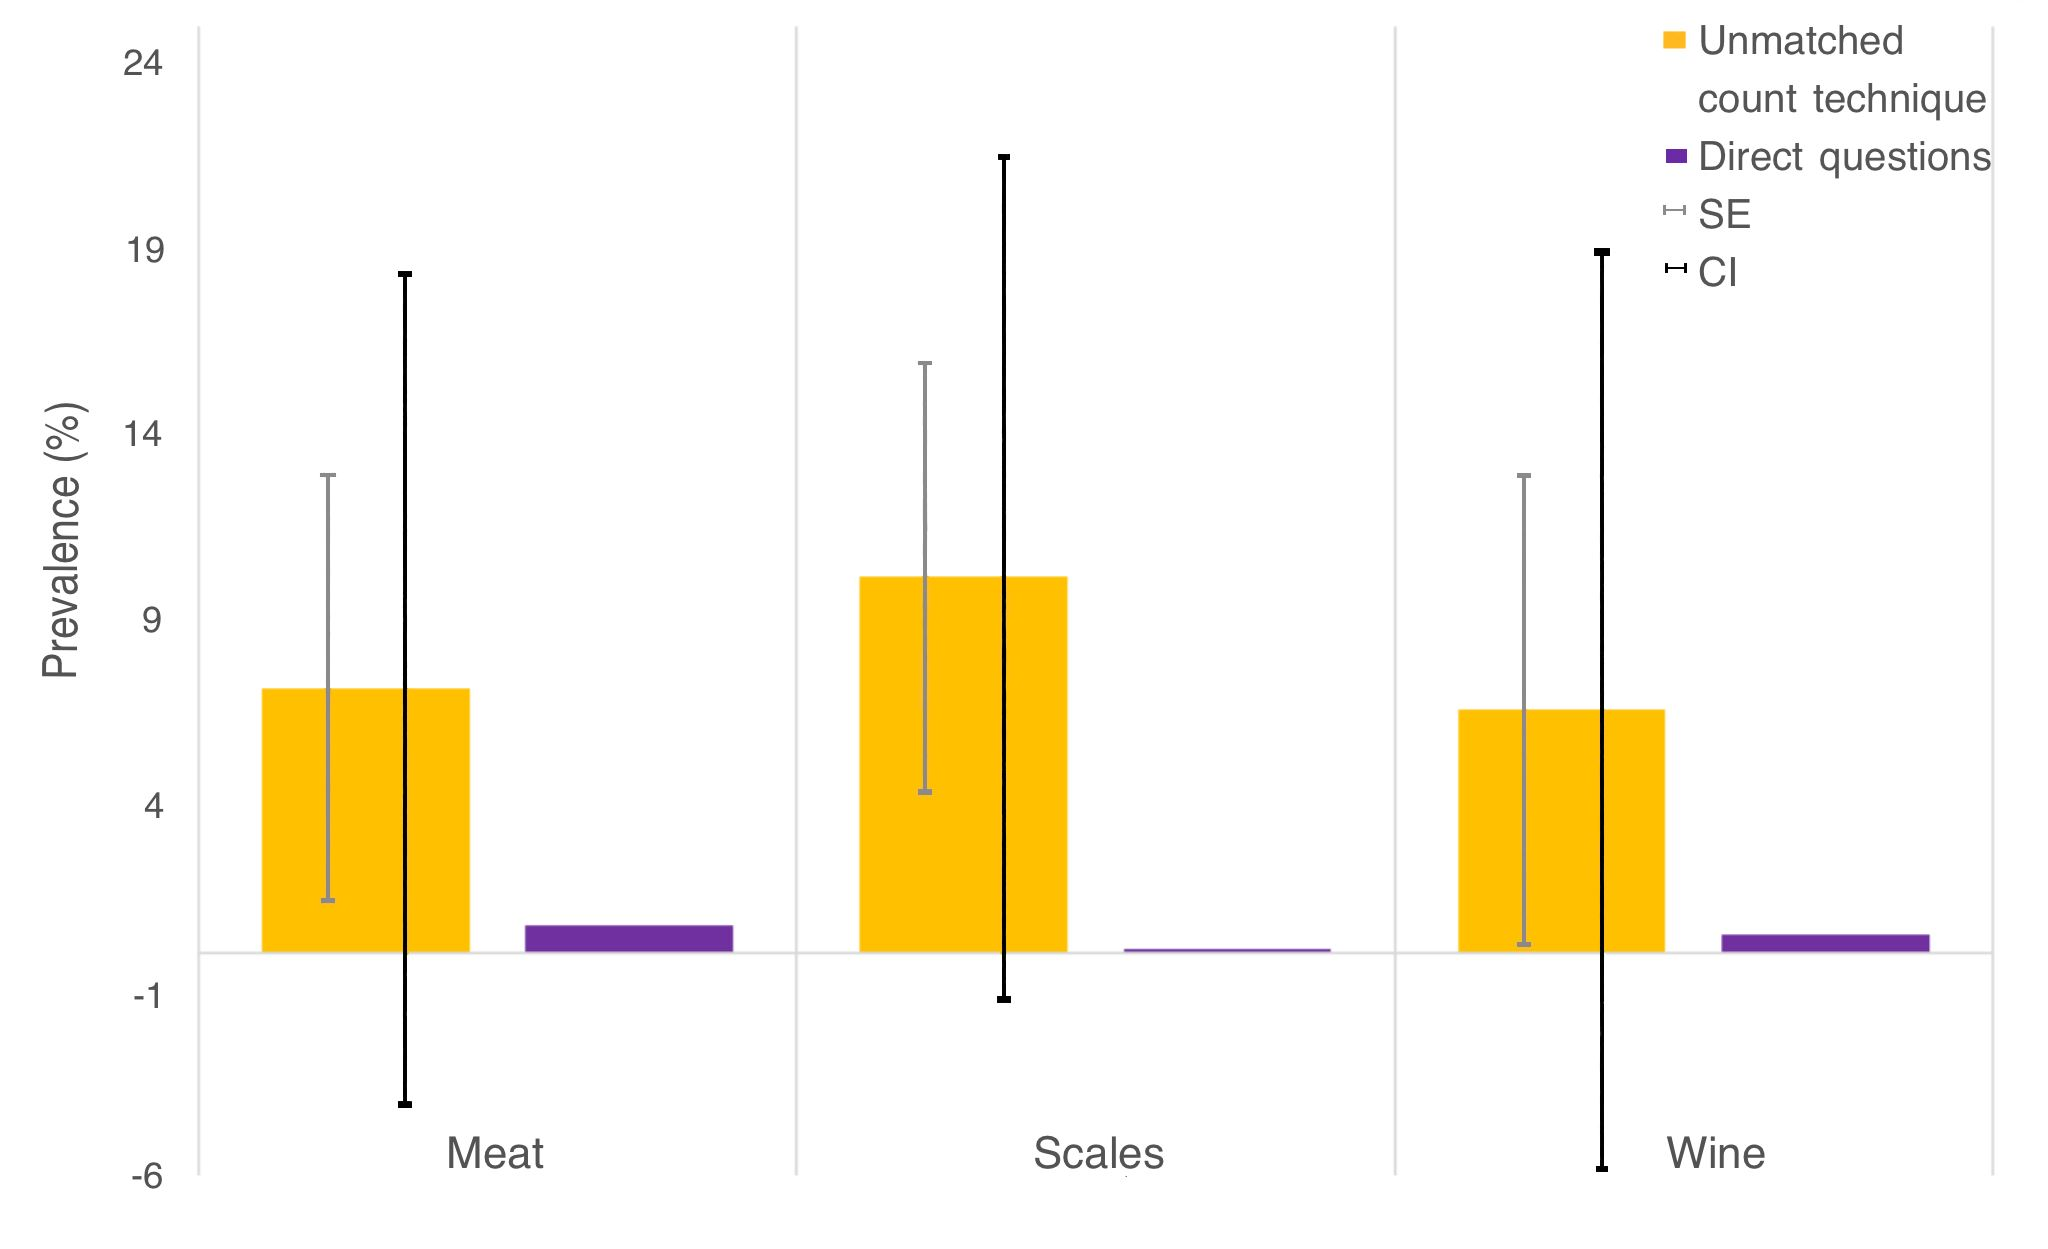 Consumption prevalence results of pangolin meat, scales and wine